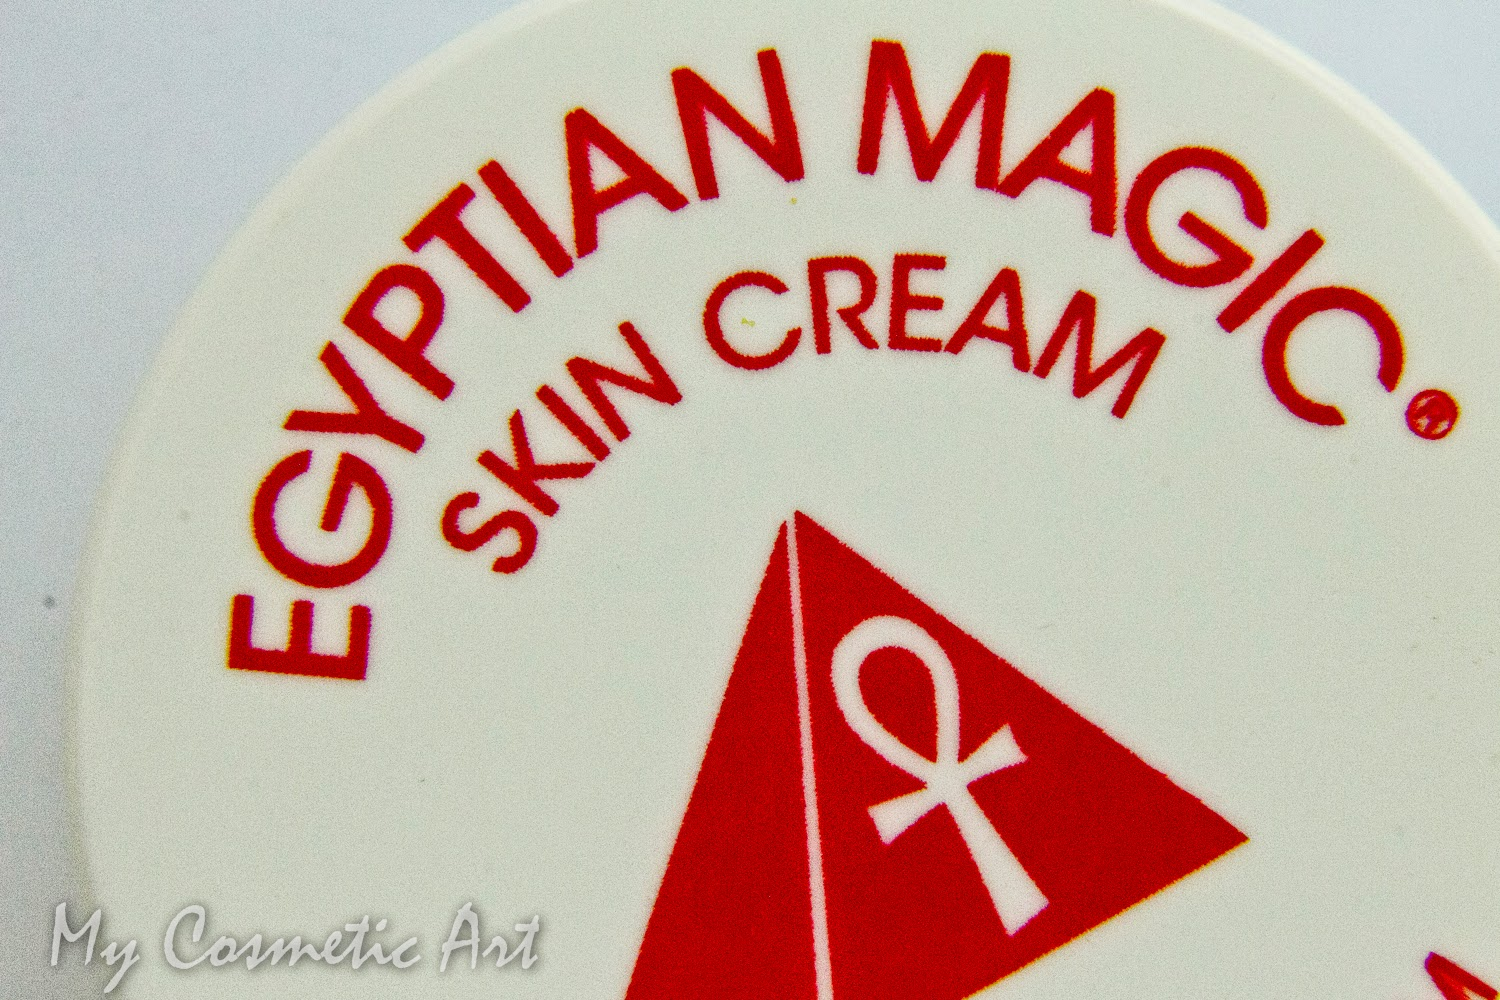 Egyptian Magic como crema de noche.